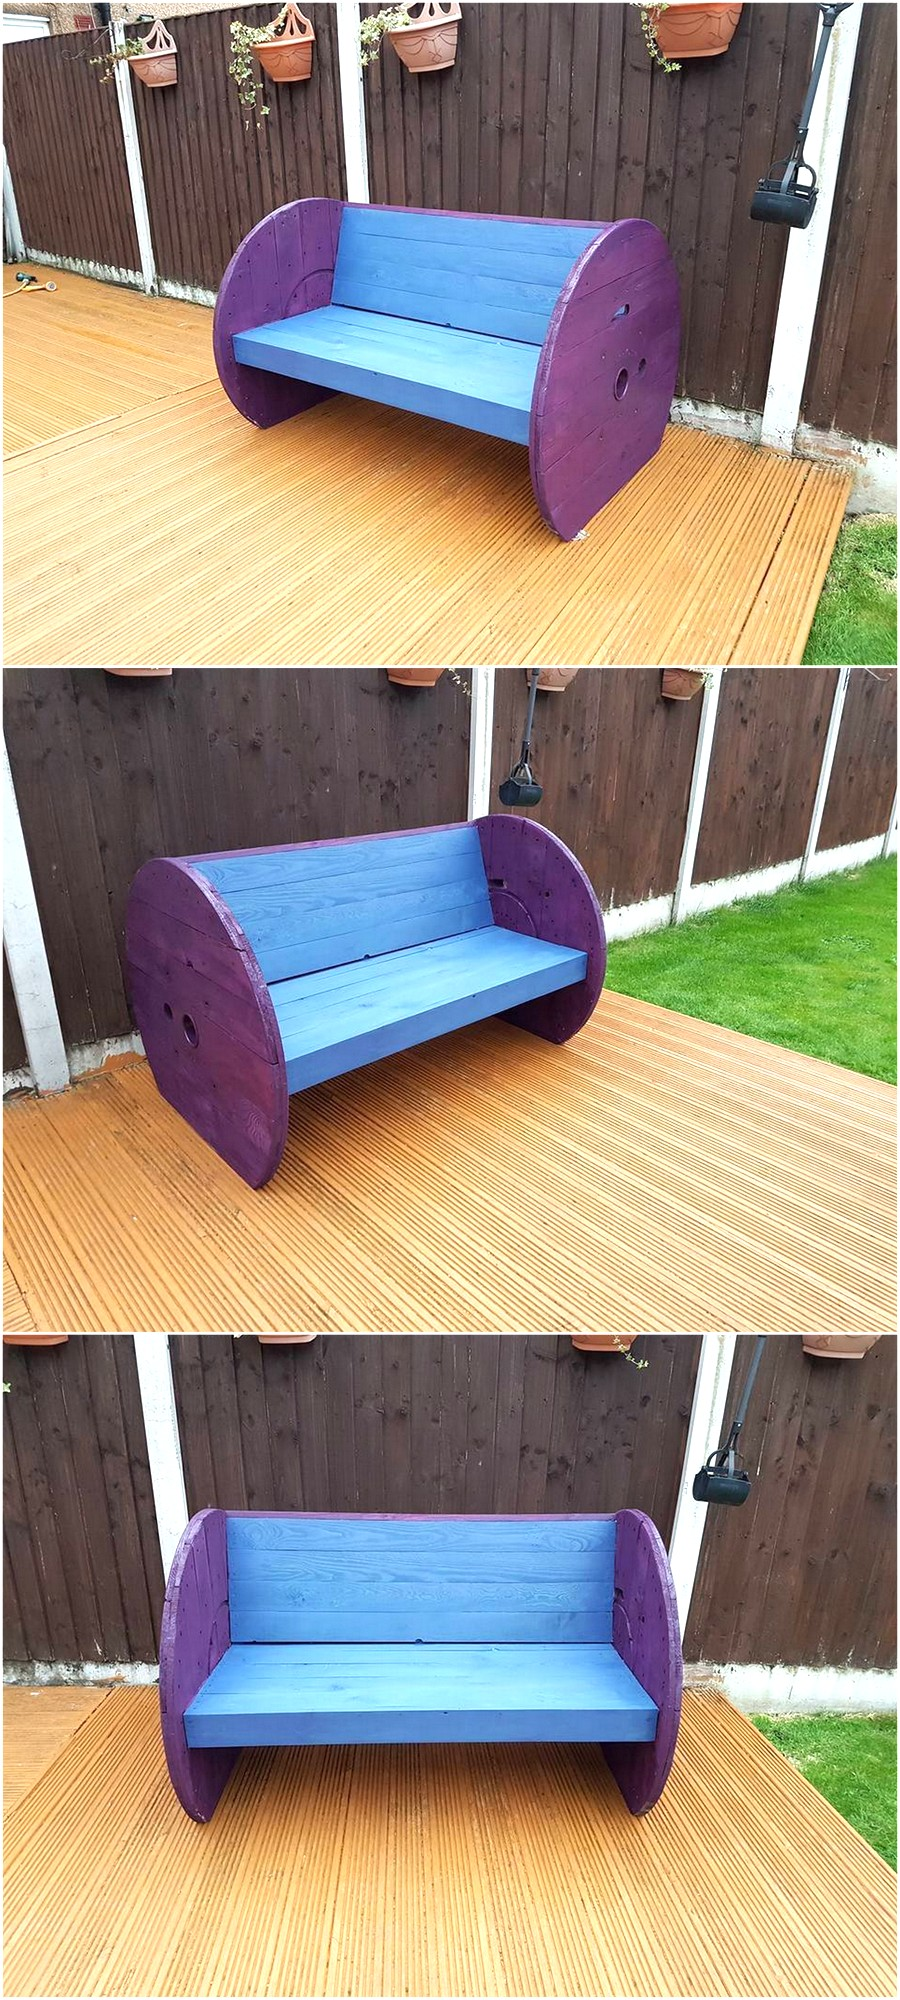 pallet-plus-cable-reel-garden-bench